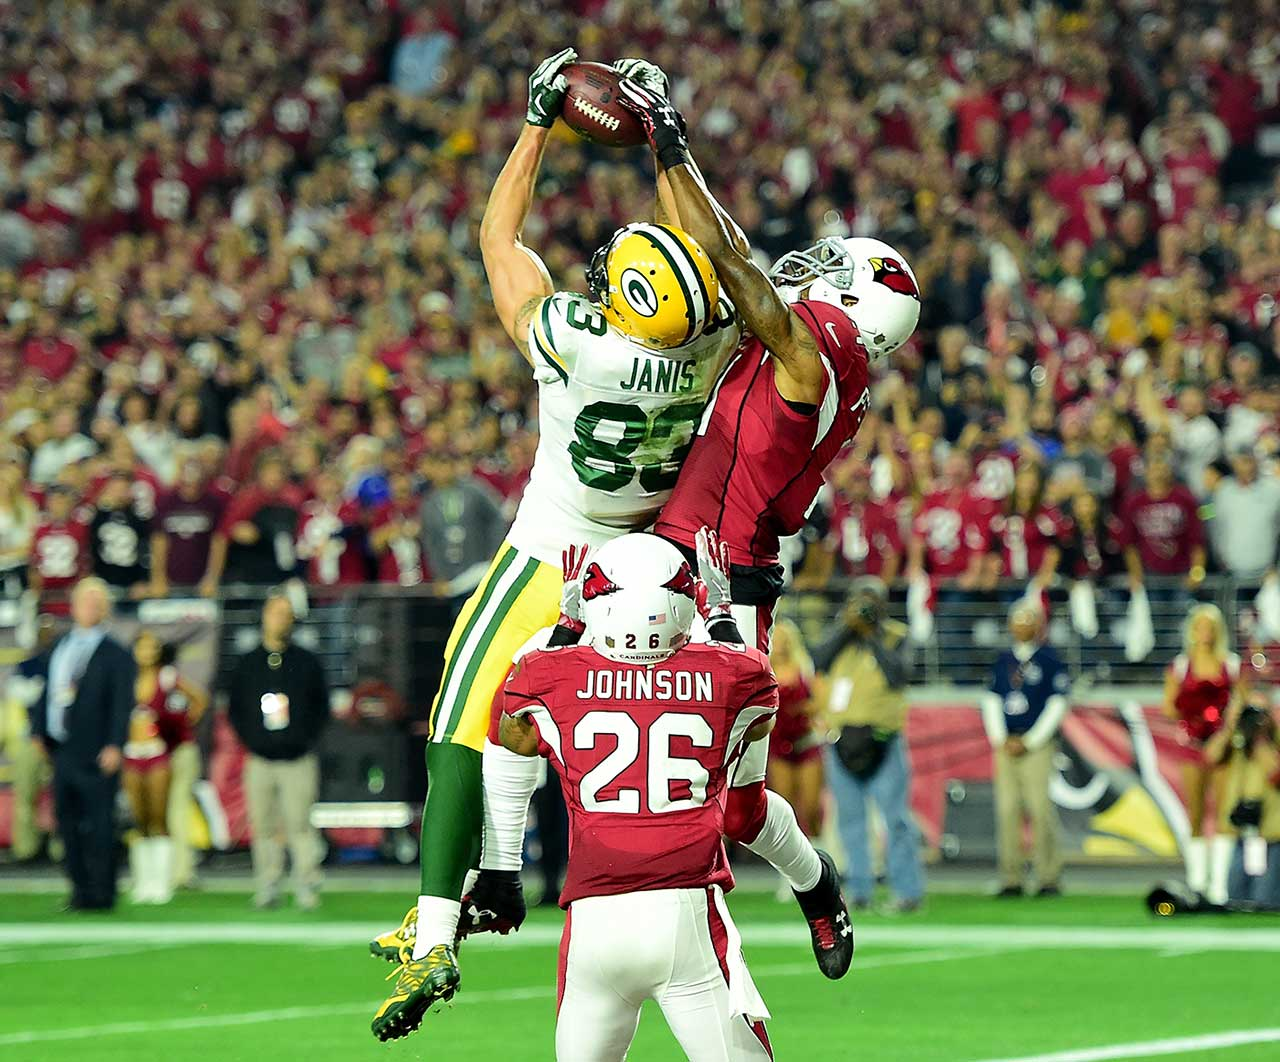 Before Larry Fitzgerald became the hero in overtime, Jeff Janis had etched his name into Green Bay lore with this 41-yard Hail Mary touchdown in the final seconds of regulation to give Green Bay new life.